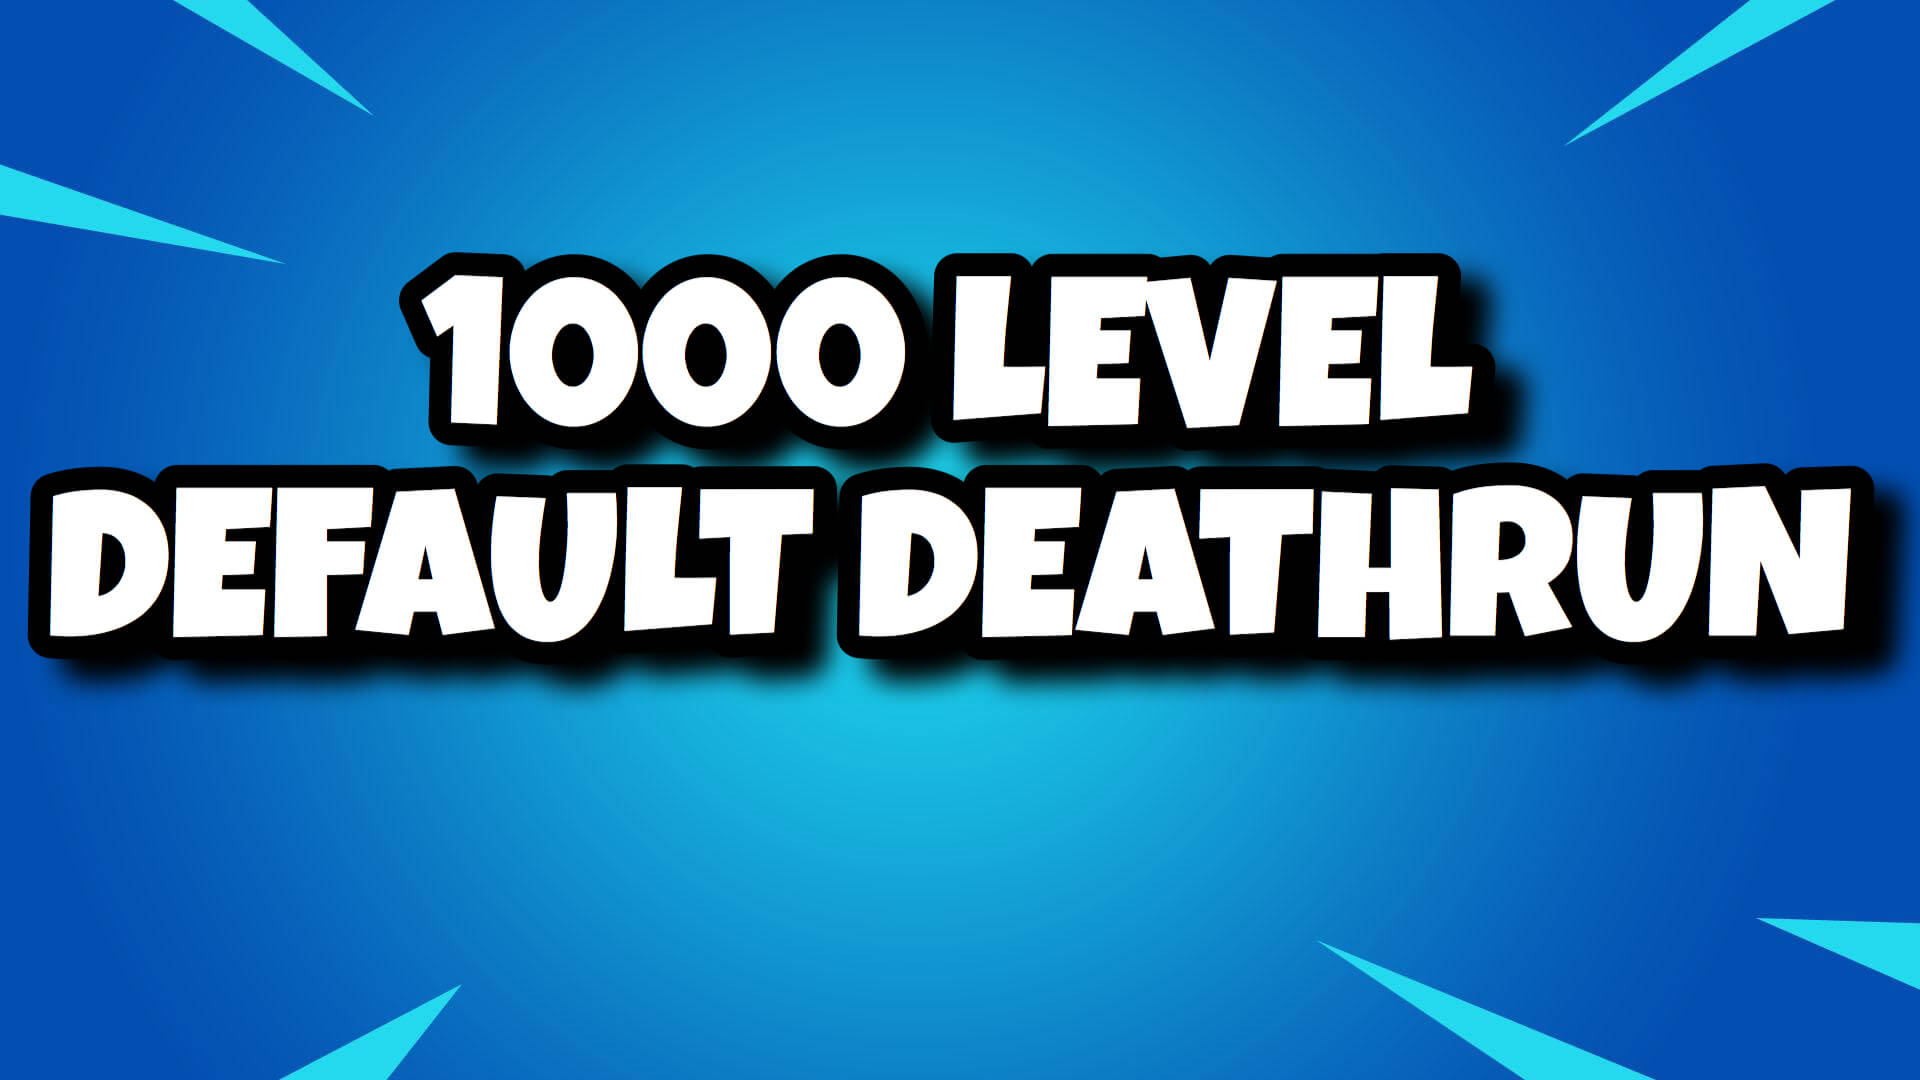 1000 LEVEL DEFAULT DEATHRUN